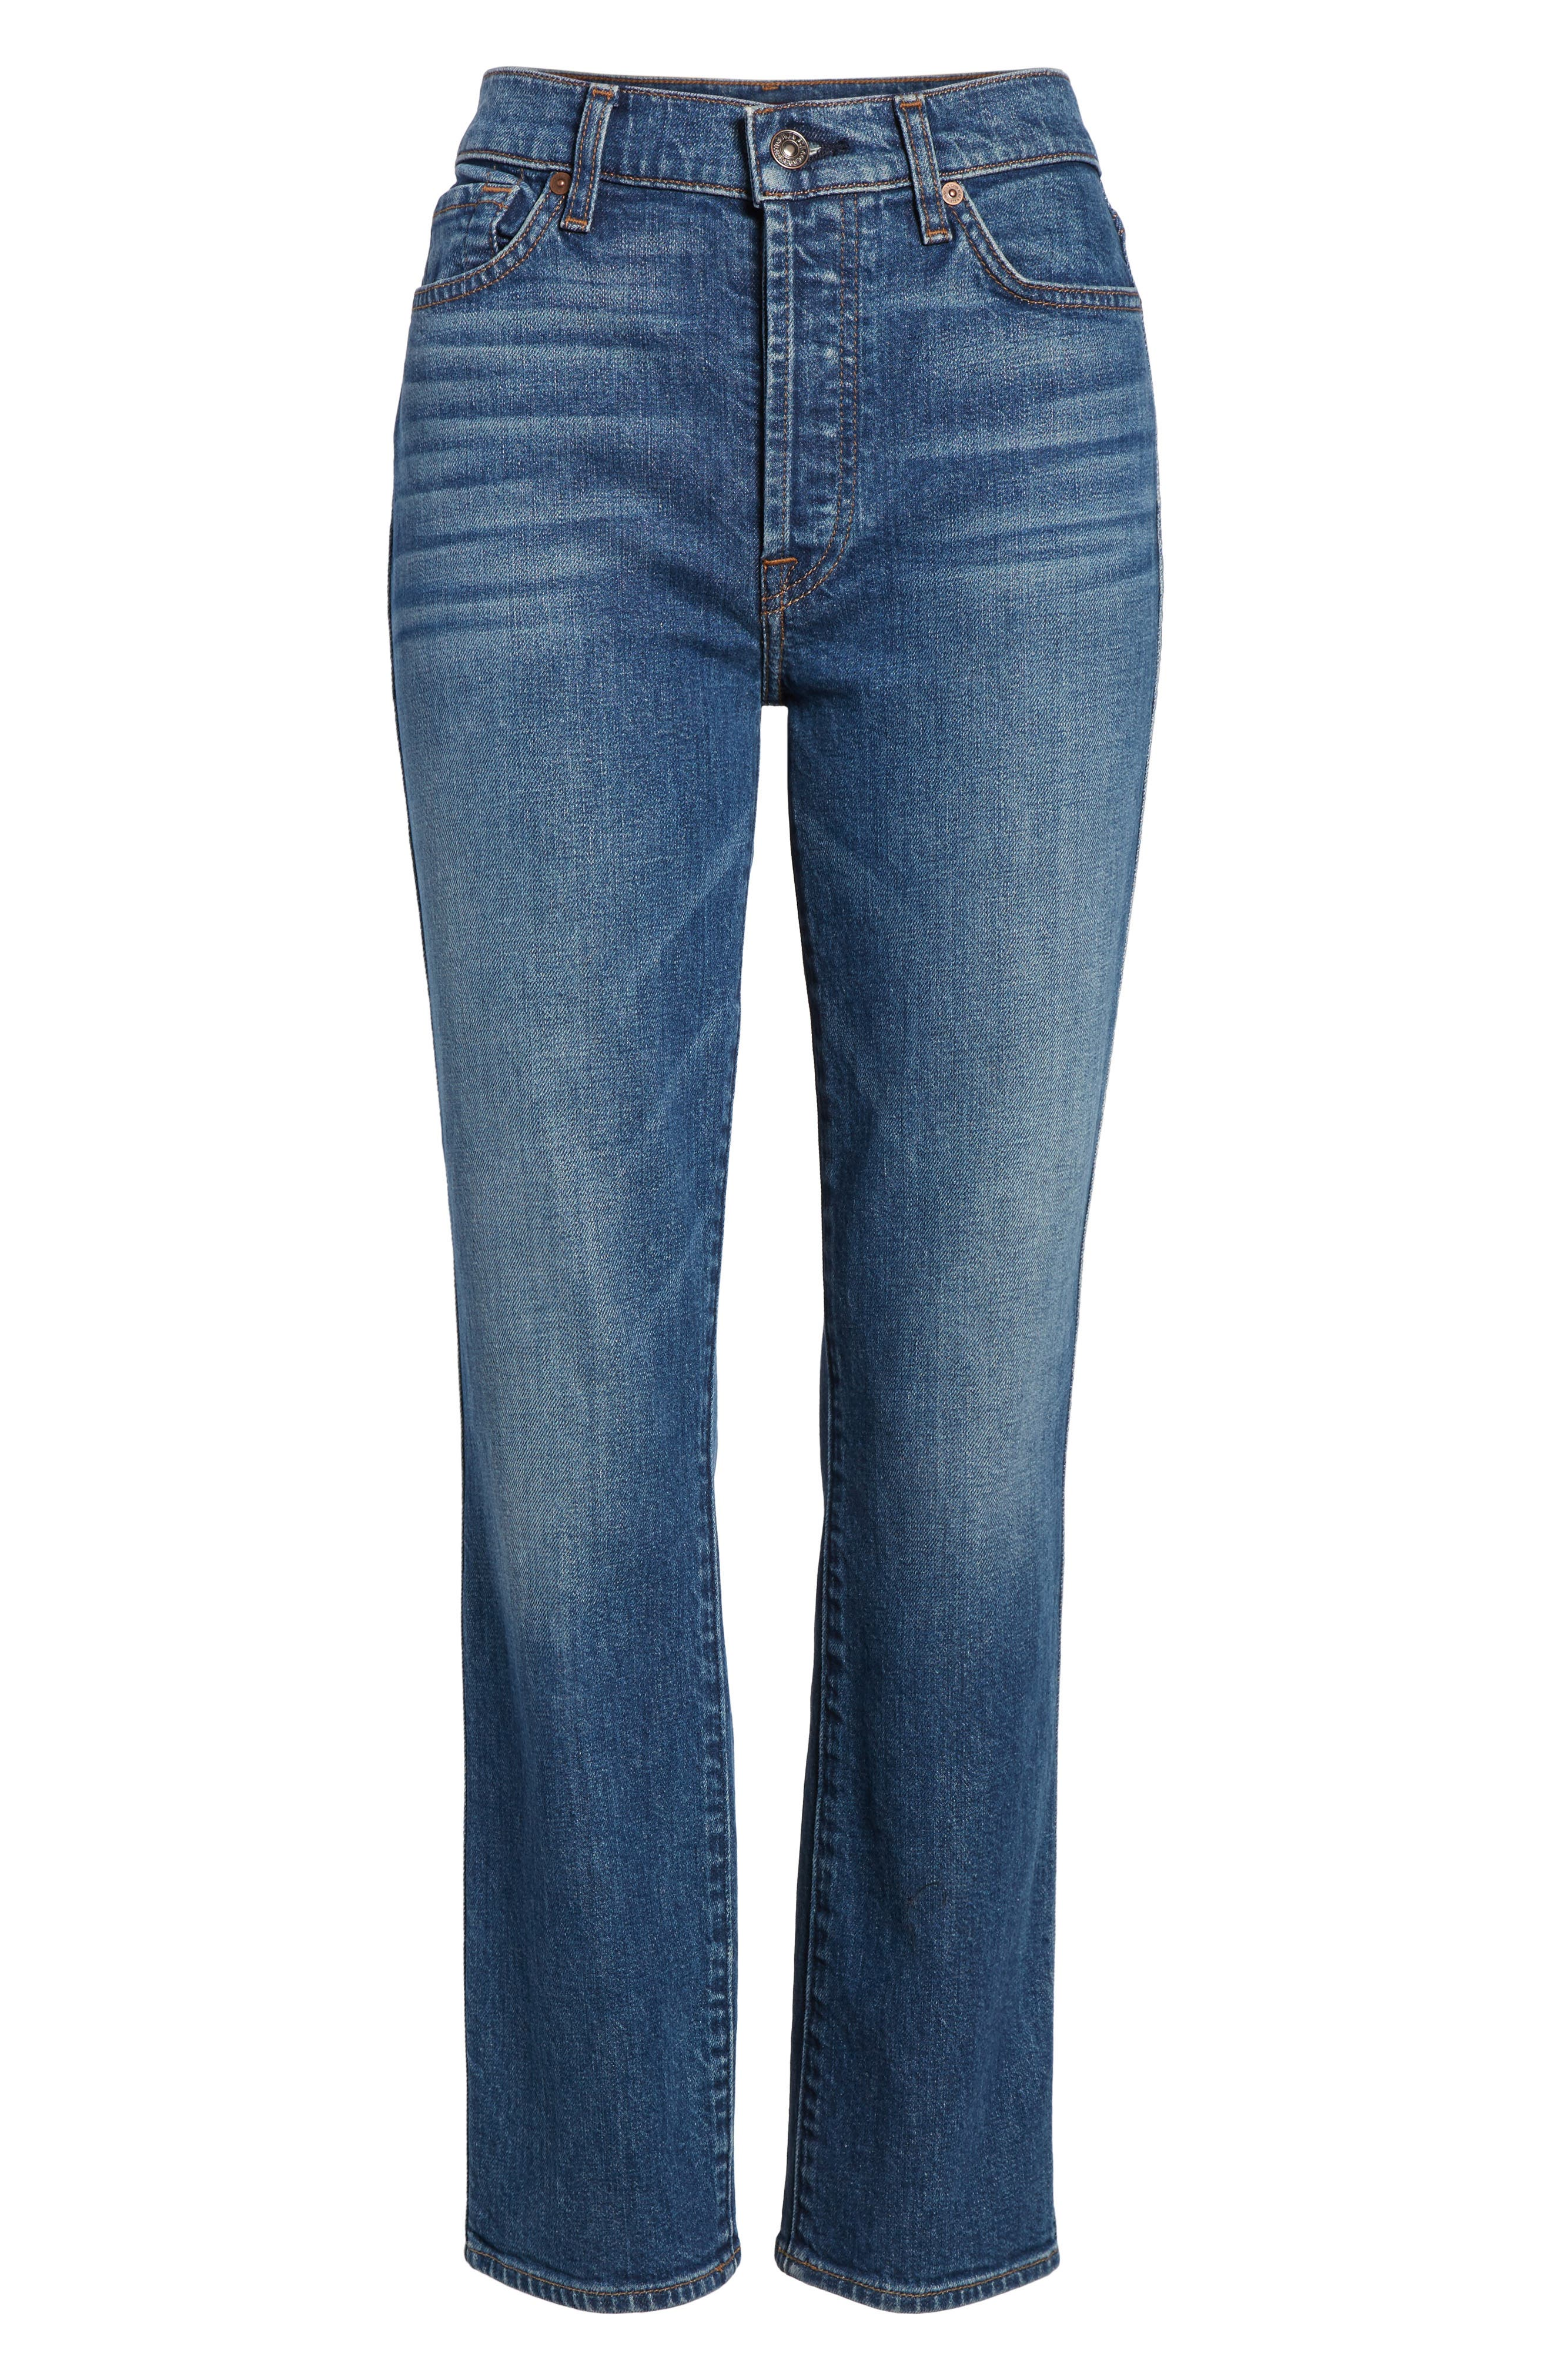 Edie High Waist Crop Straight Leg Jeans,                             Alternate thumbnail 7, color,                             Montreal W/ Embroidery